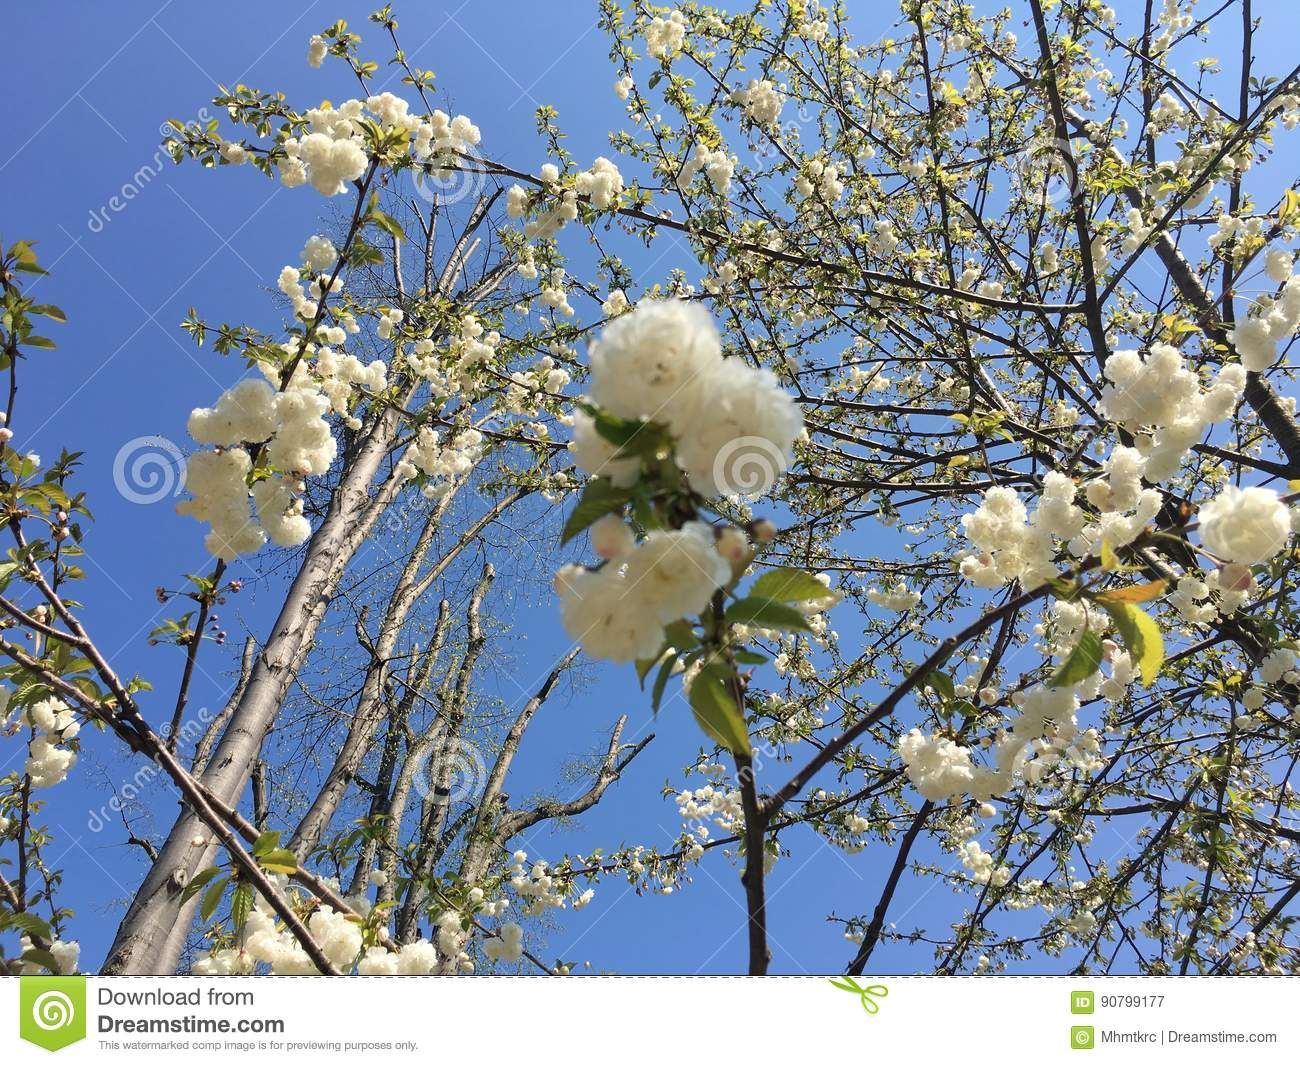 Tree and Flowers